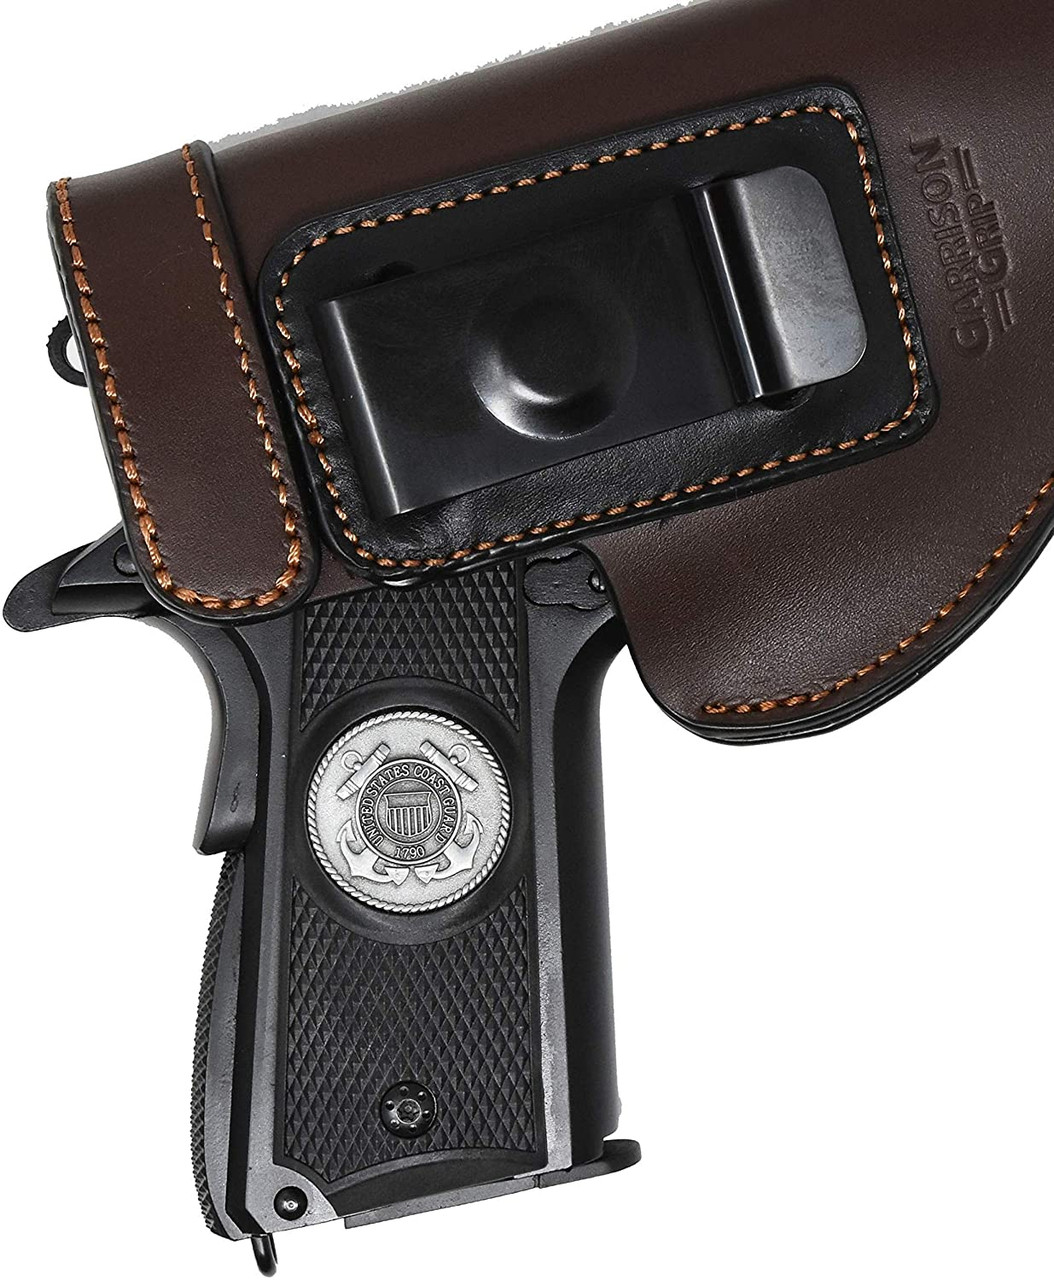 Garrison Grip 1911 Colt A1 Full Size and Clones (Grips Only) with US Coast Guard Pewter Medallion Set in Solid High Grade Ebony Black Colored ABS